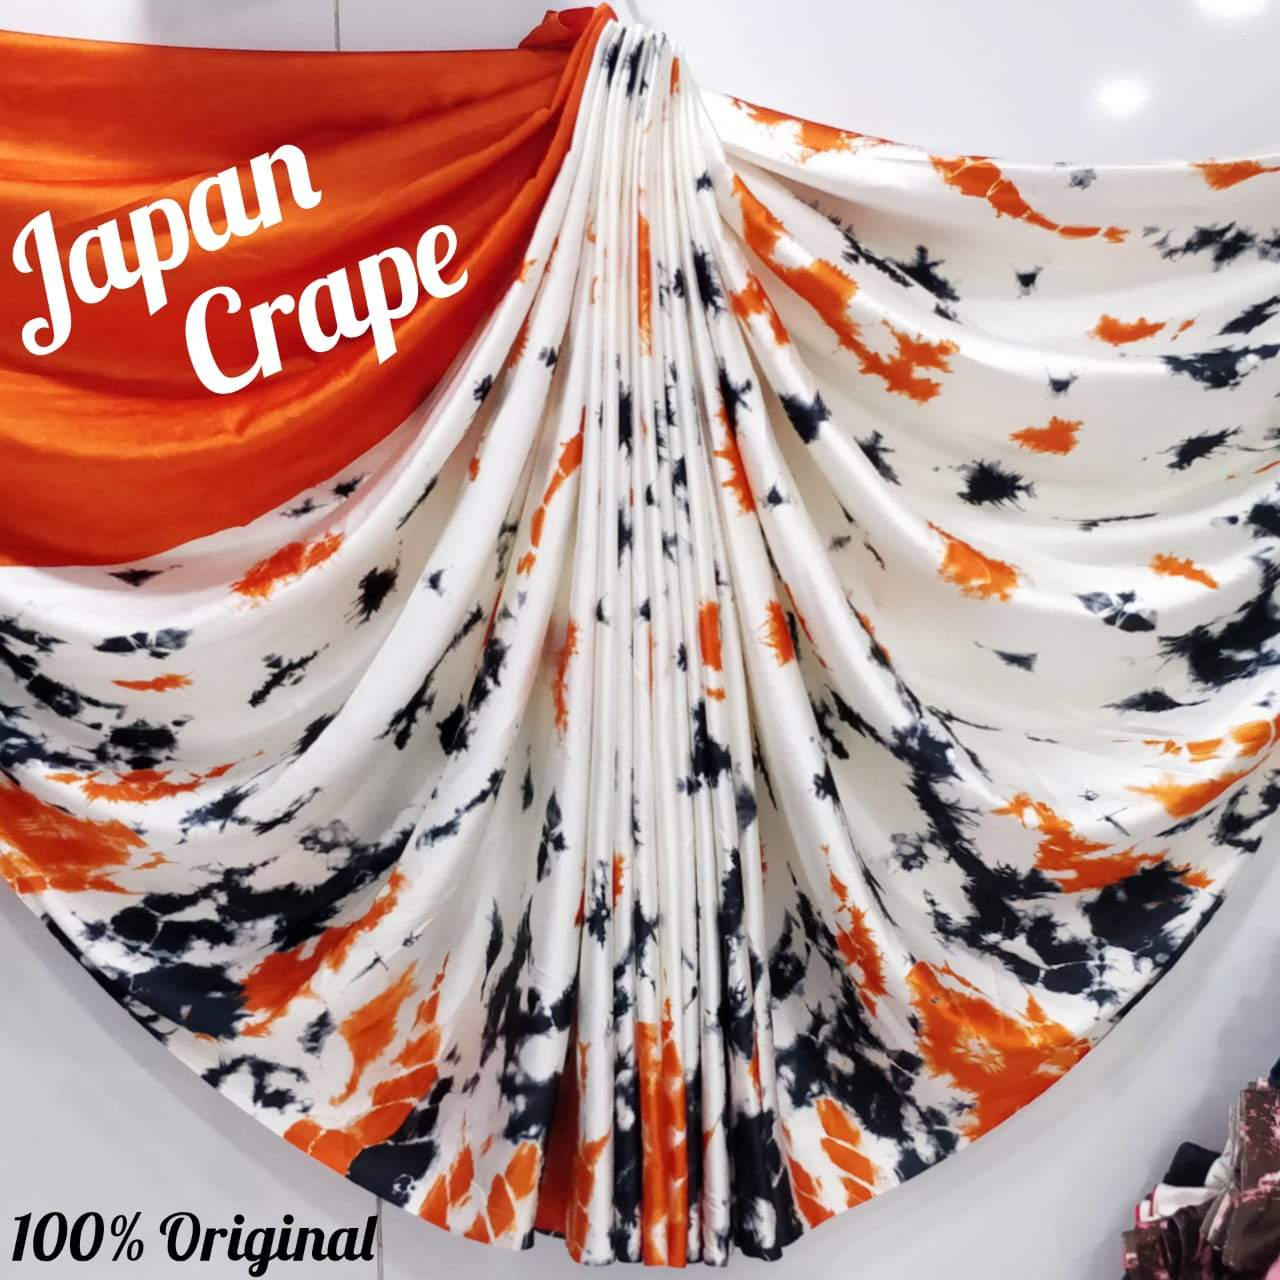 Japan crape silk saree 5003